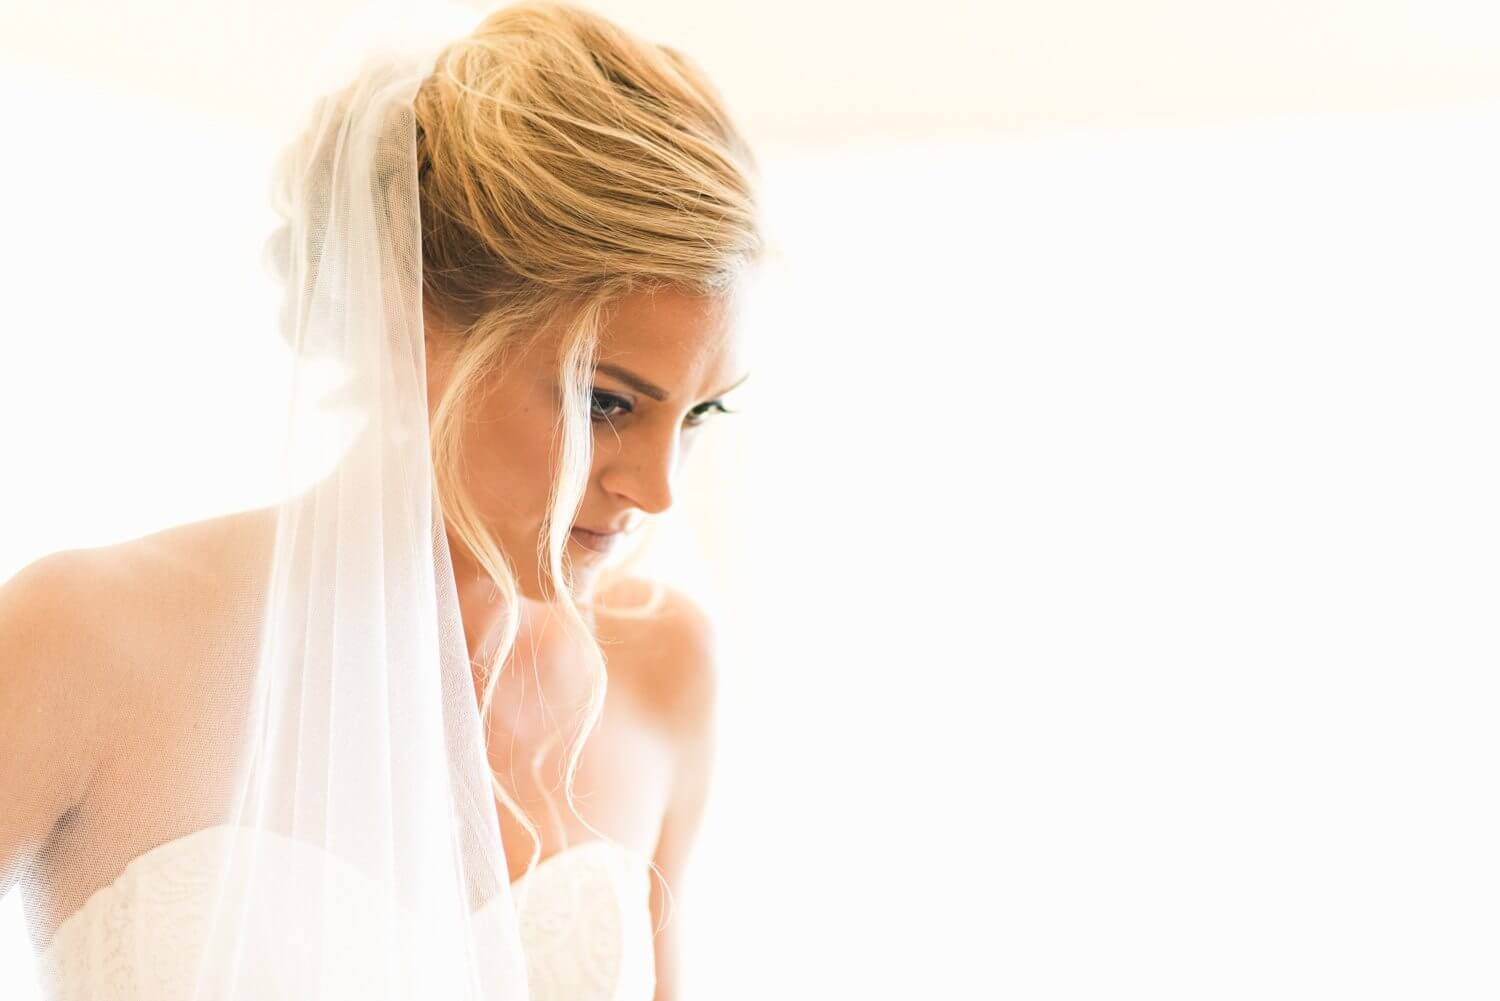 Freas Photography Southernmost House Wedding 41 - Boho Styled Key West Wedding at the Southernmost House in Key West, Florida